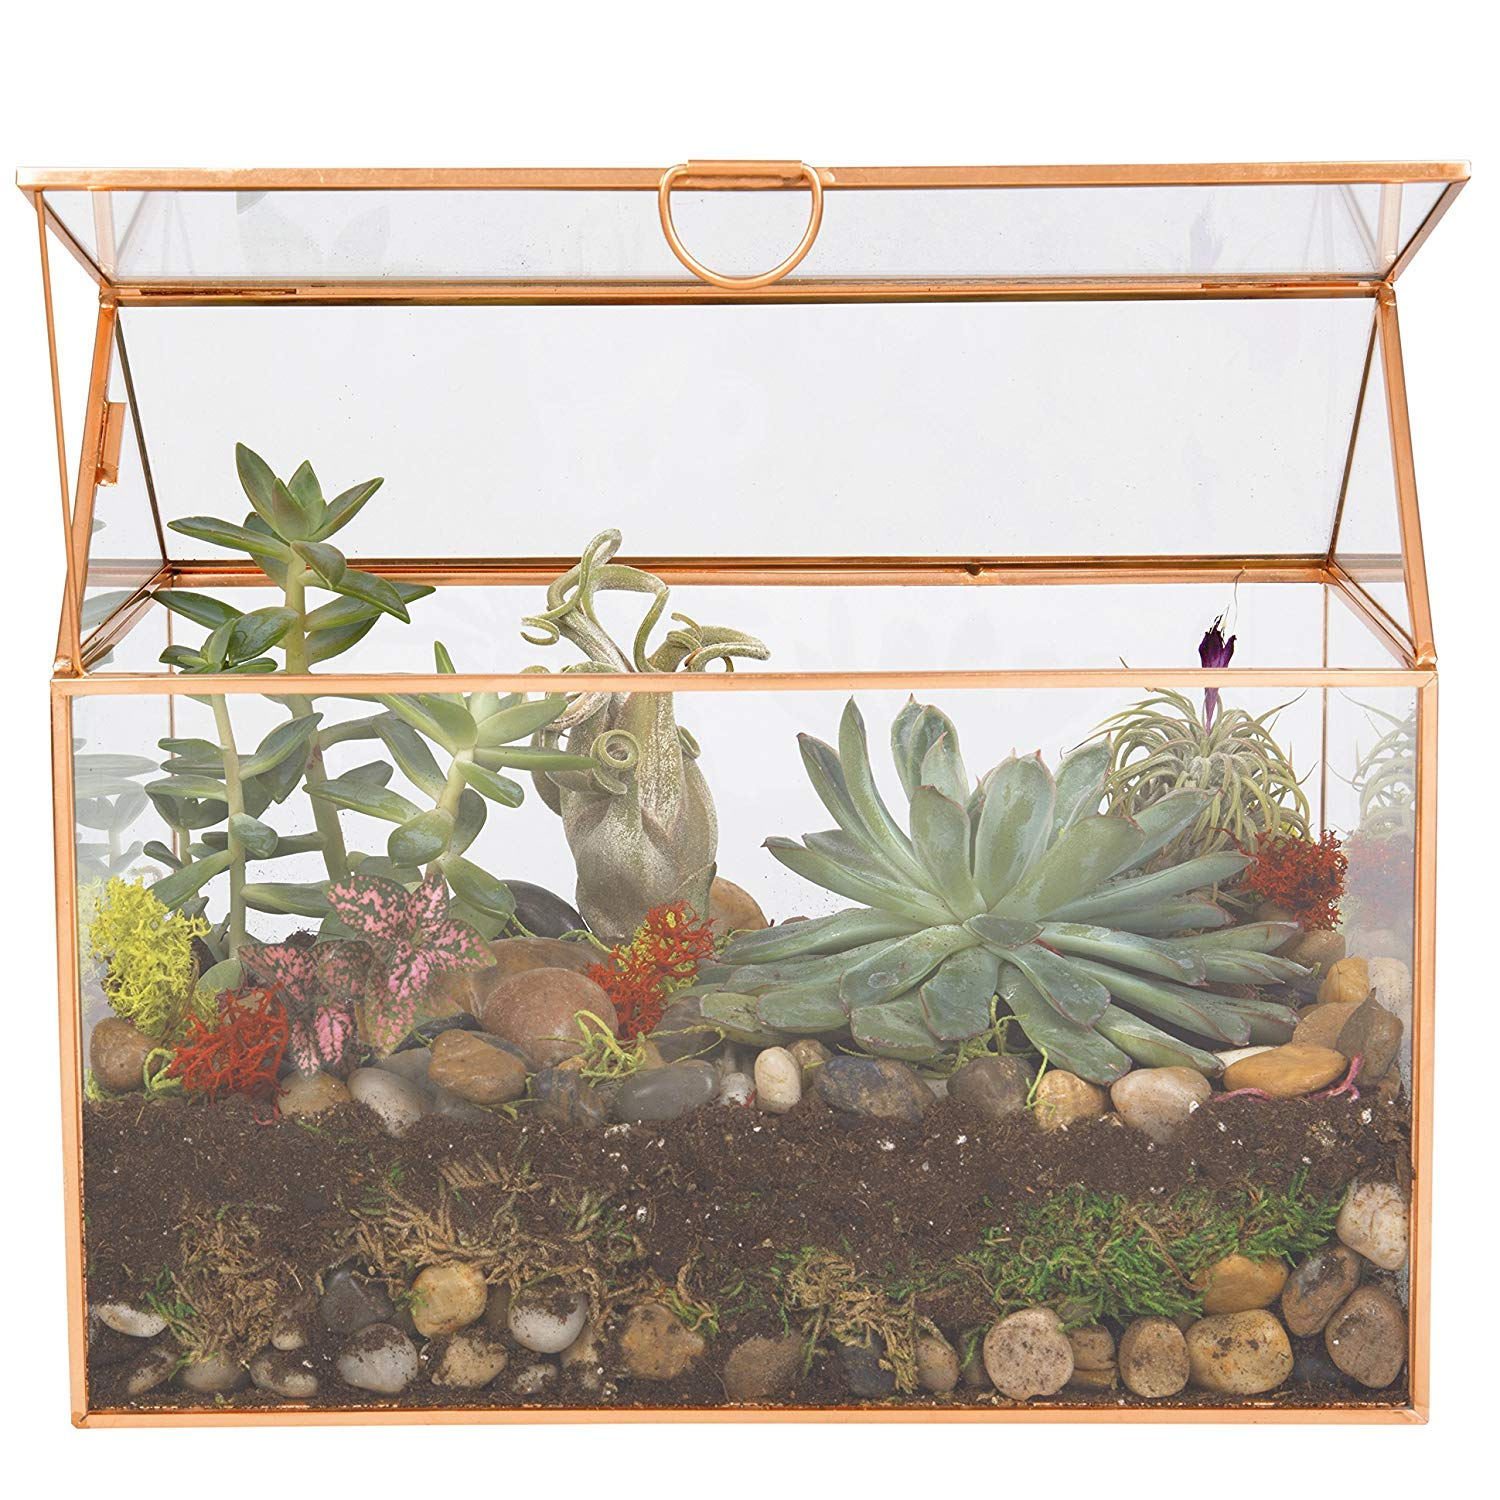 Deco Glass Terrarium, Succulent, Air Plant Large 9.8 x 6 x 8